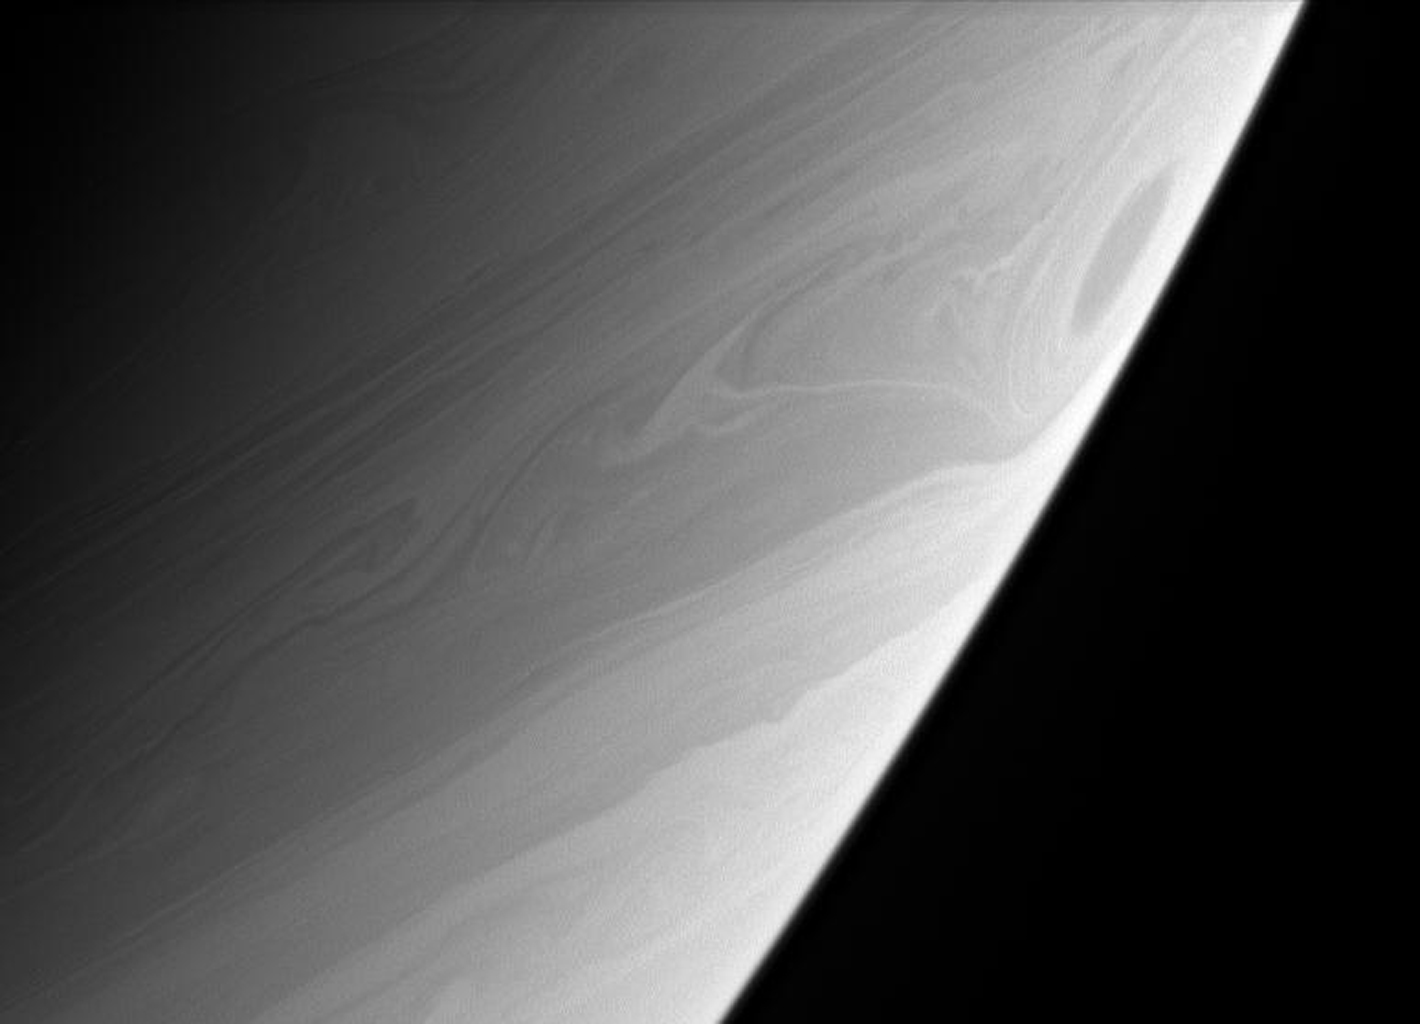 A great vortex rolls through high southern latitudes on Saturn, whirling twisted contours into the clouds. This image was taken with NASA's Cassini spacecraft's narrow-angle camera at a distance of approximately 2.8 million kilometers from Saturn.